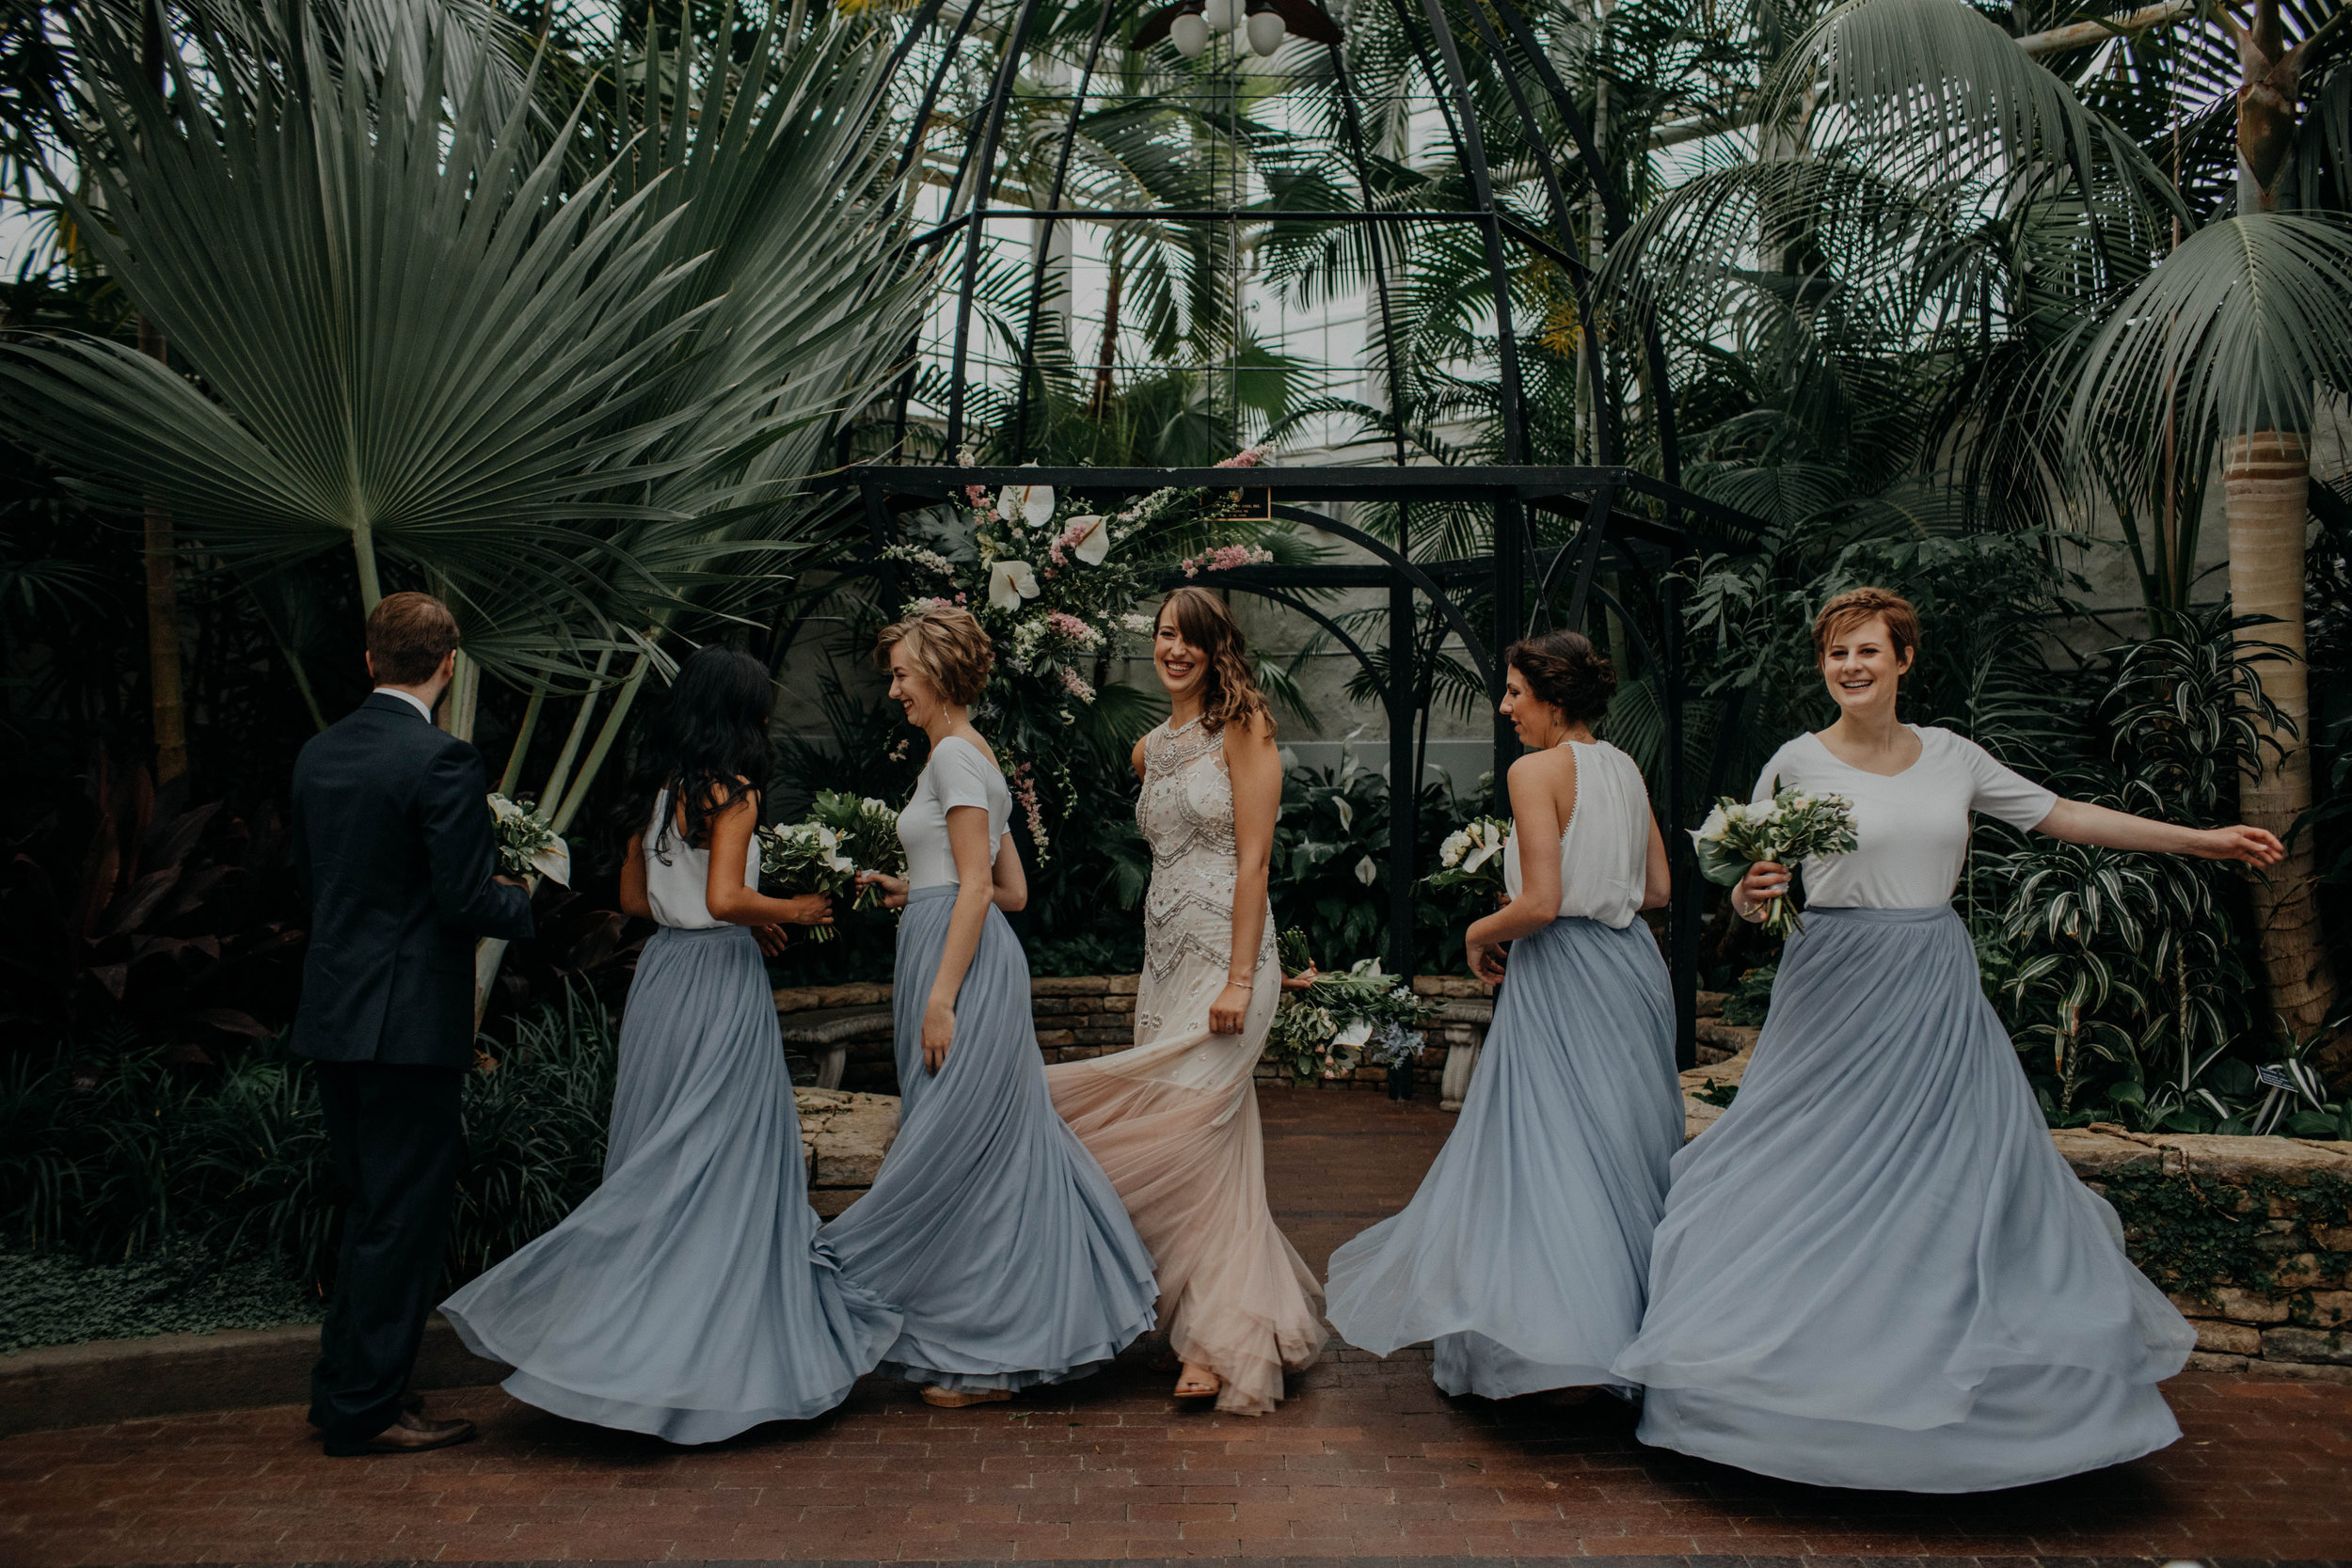 franklin park conservatory wedding columbus ohio wedding photographer grace e jones photography213.jpg